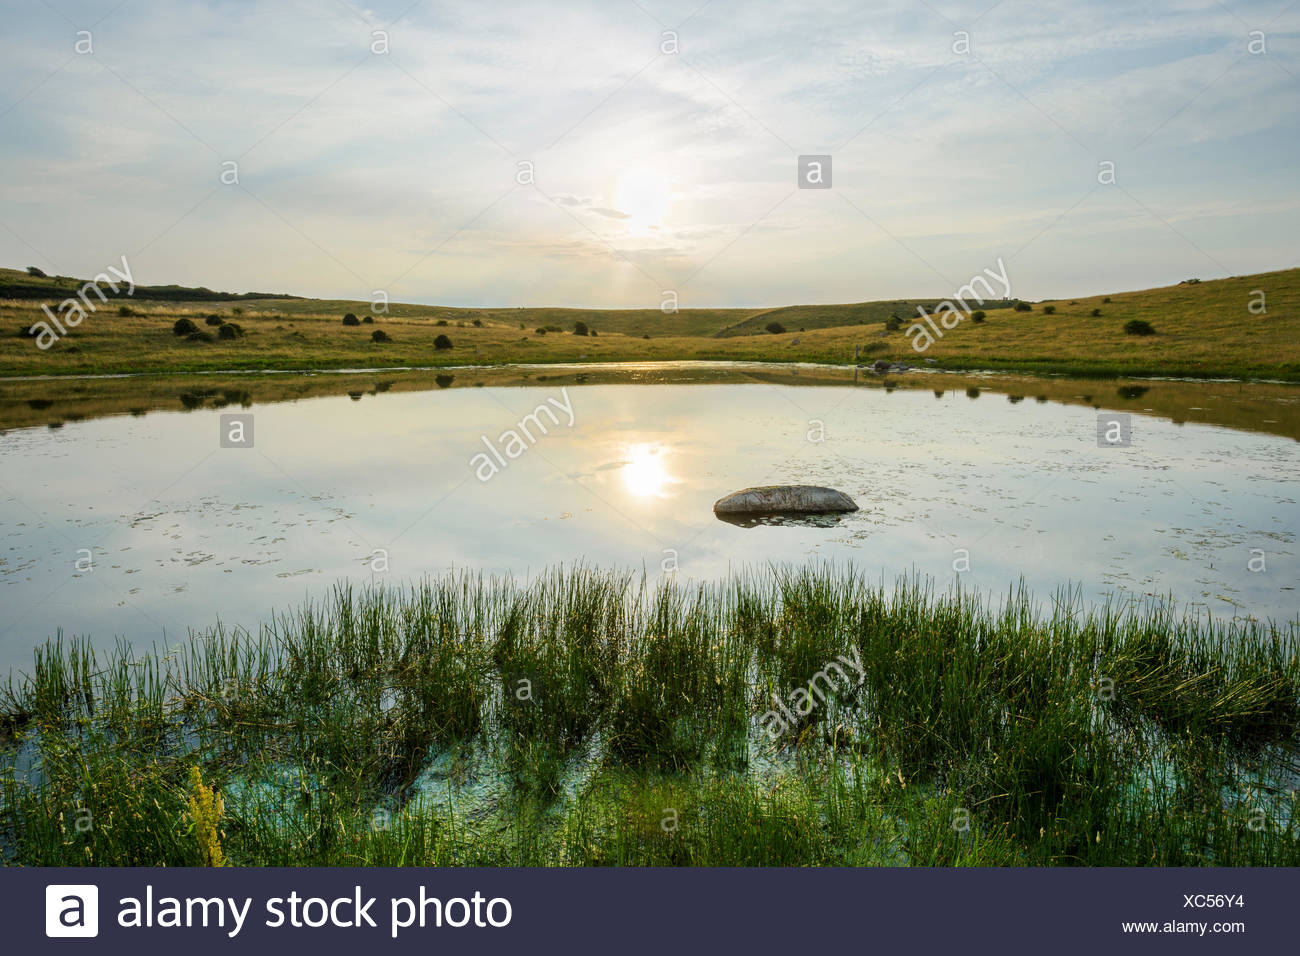 Inland Lake with Sun in Summer, Fyns Hoved, Hindsholm, Kerteminde, Funen, Baltic Sea, Denmark - Stock Image